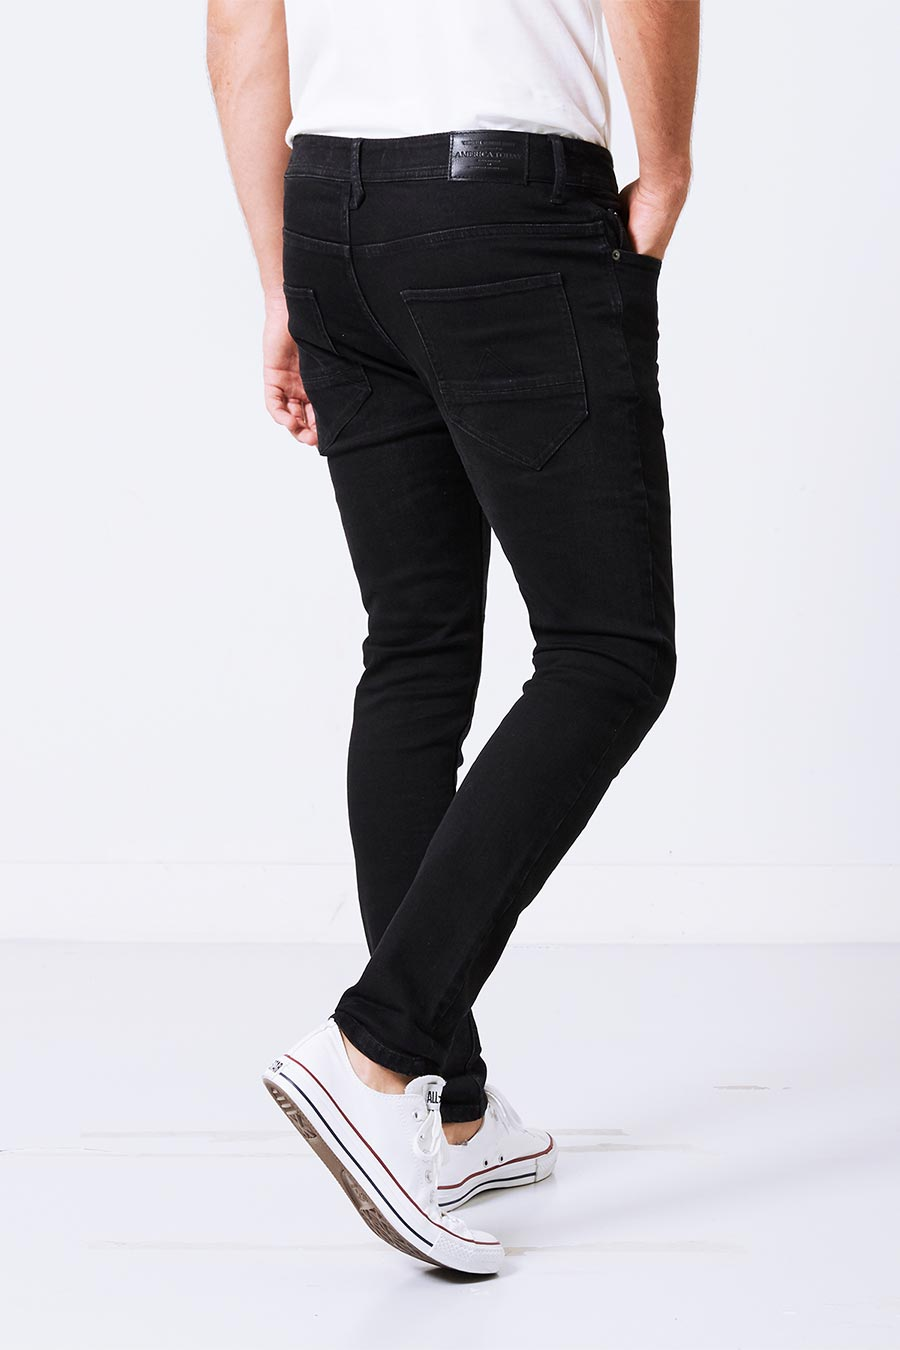 ryan men Jeans alt